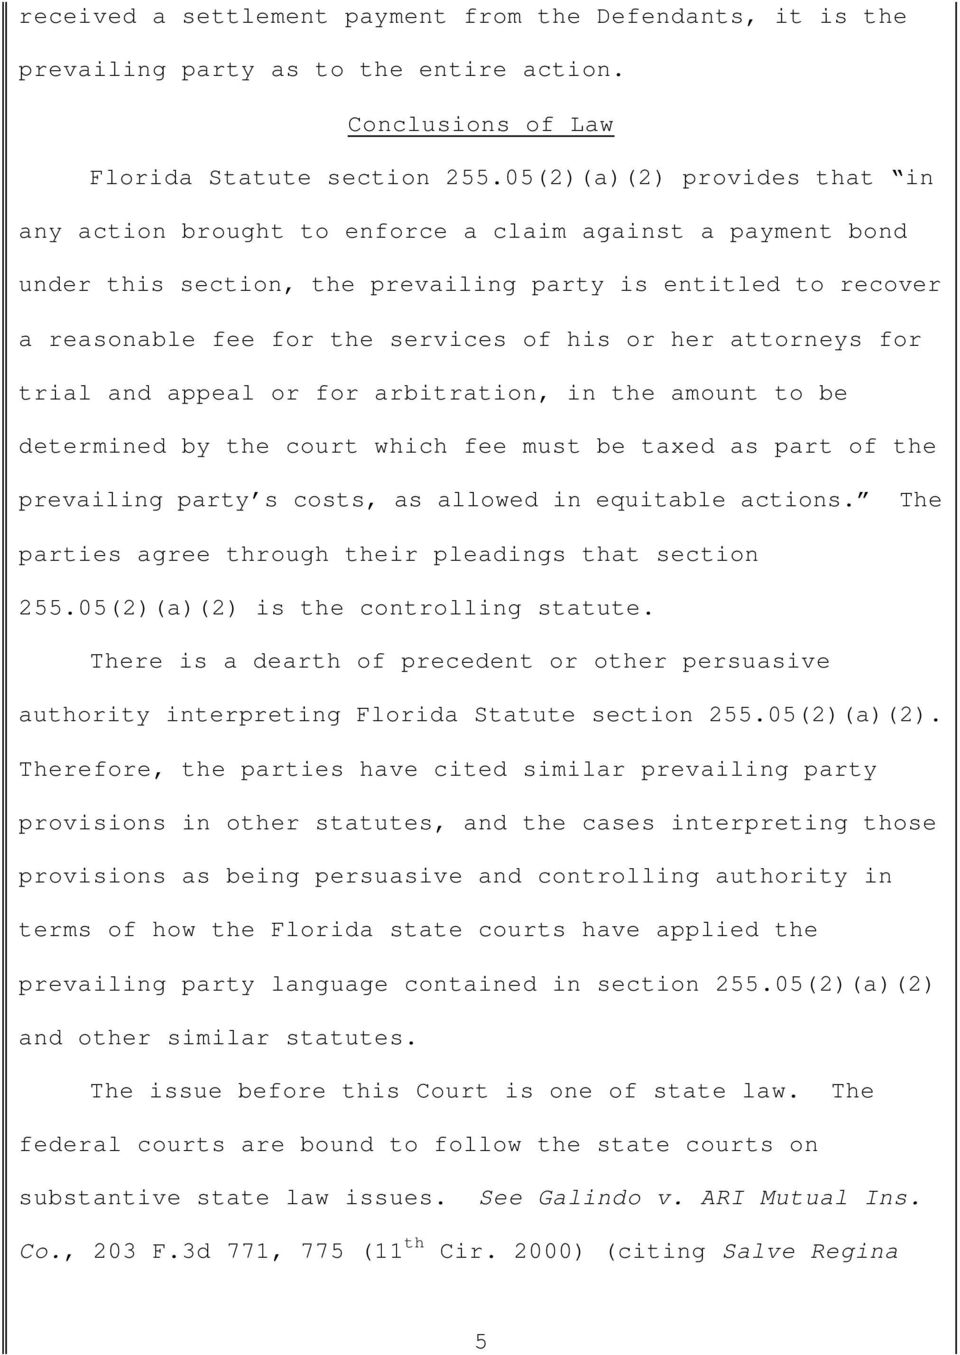 her attorneys for trial and appeal or for arbitration, in the amount to be determined by the court which fee must be taxed as part of the prevailing party s costs, as allowed in equitable actions.